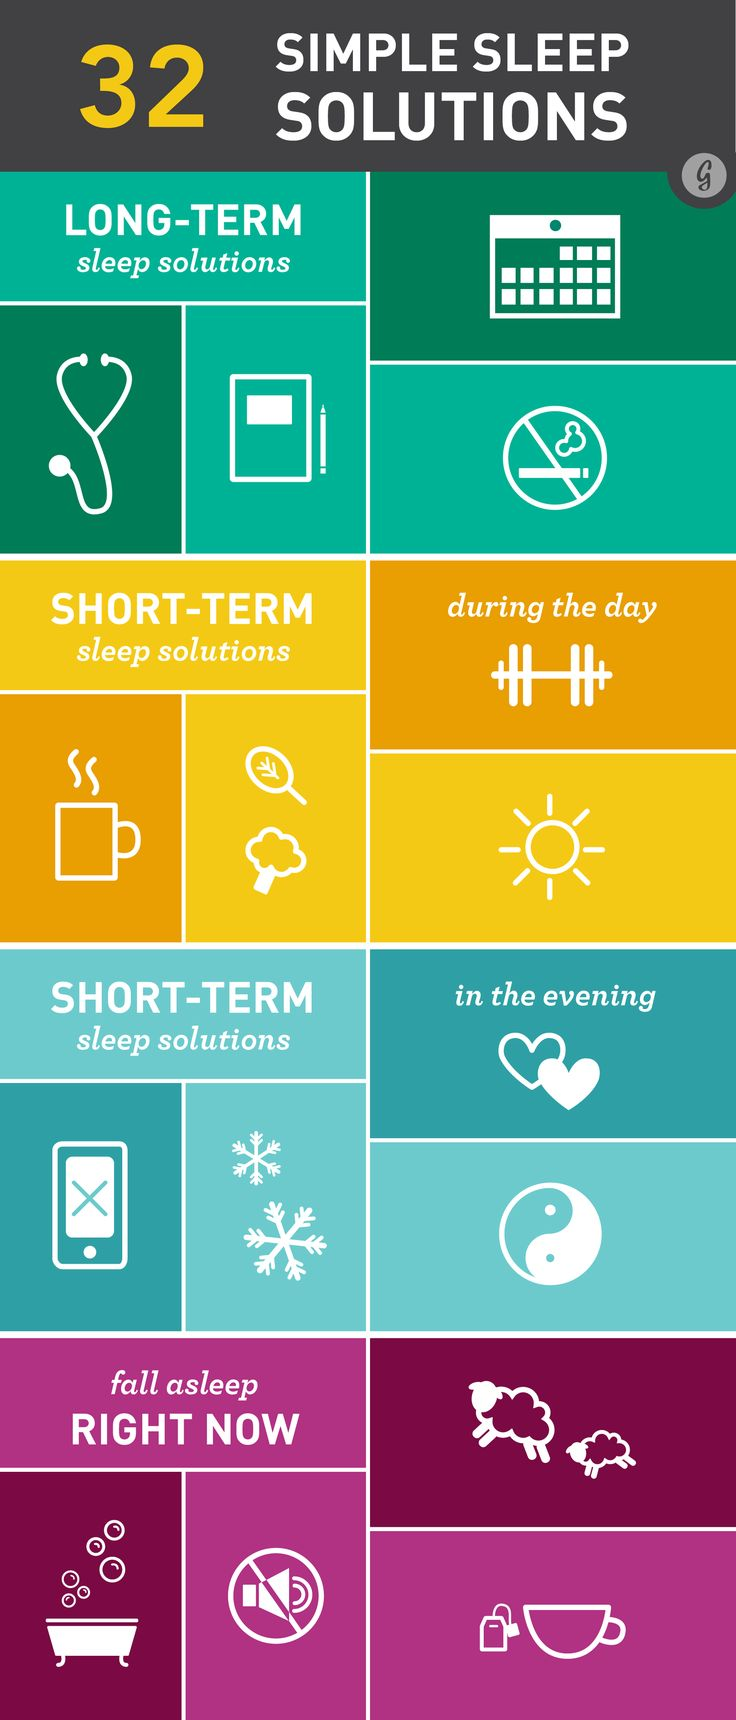 36 best sleeping images on pinterest health home remedies and 32 solutions for when you cant sleep ccuart Gallery